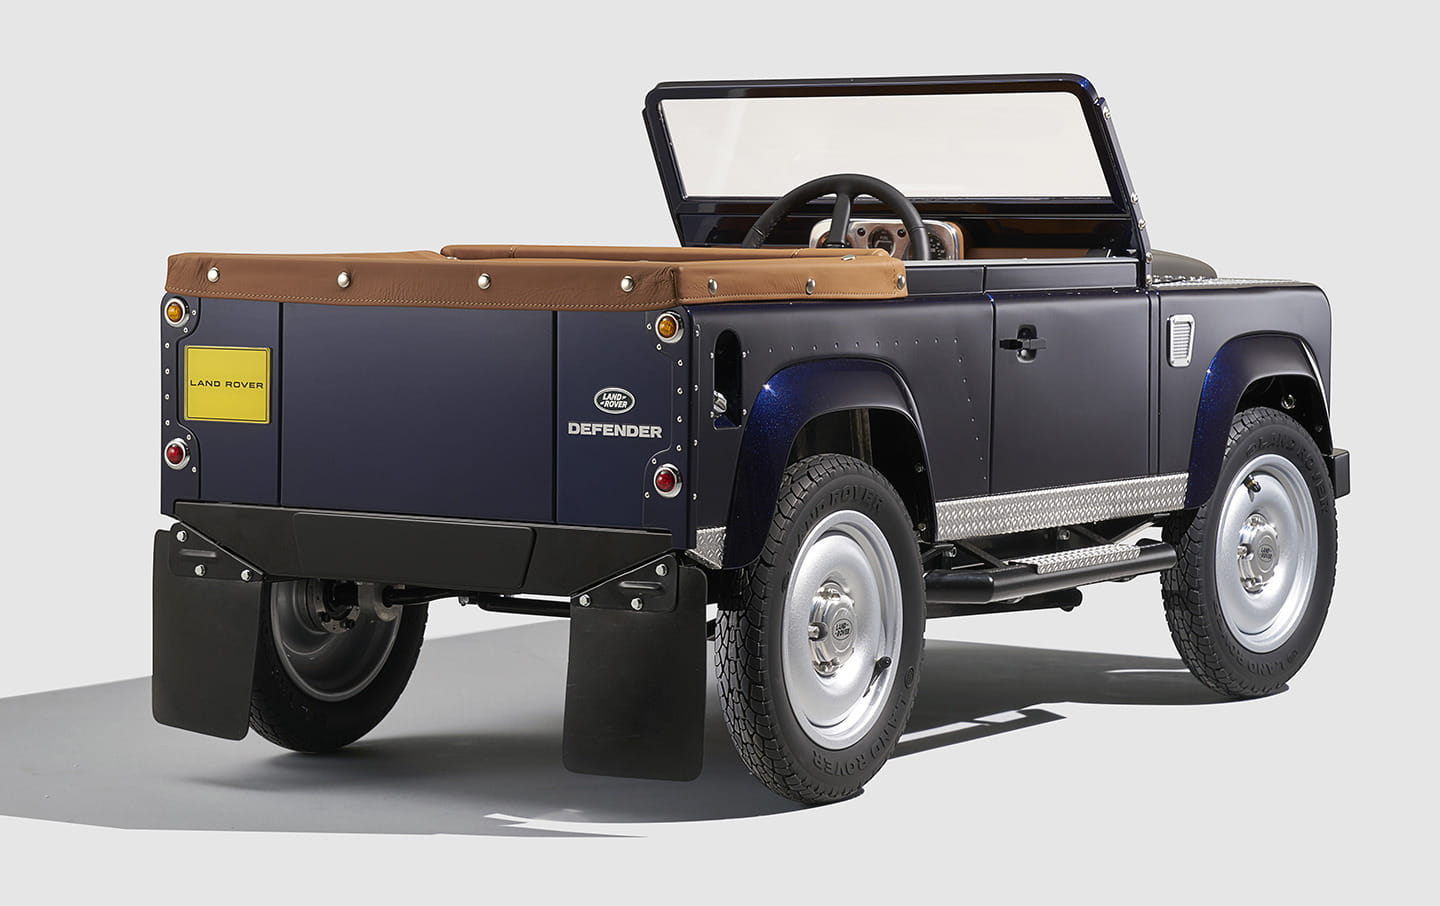 land-rover-defender-pedales-05